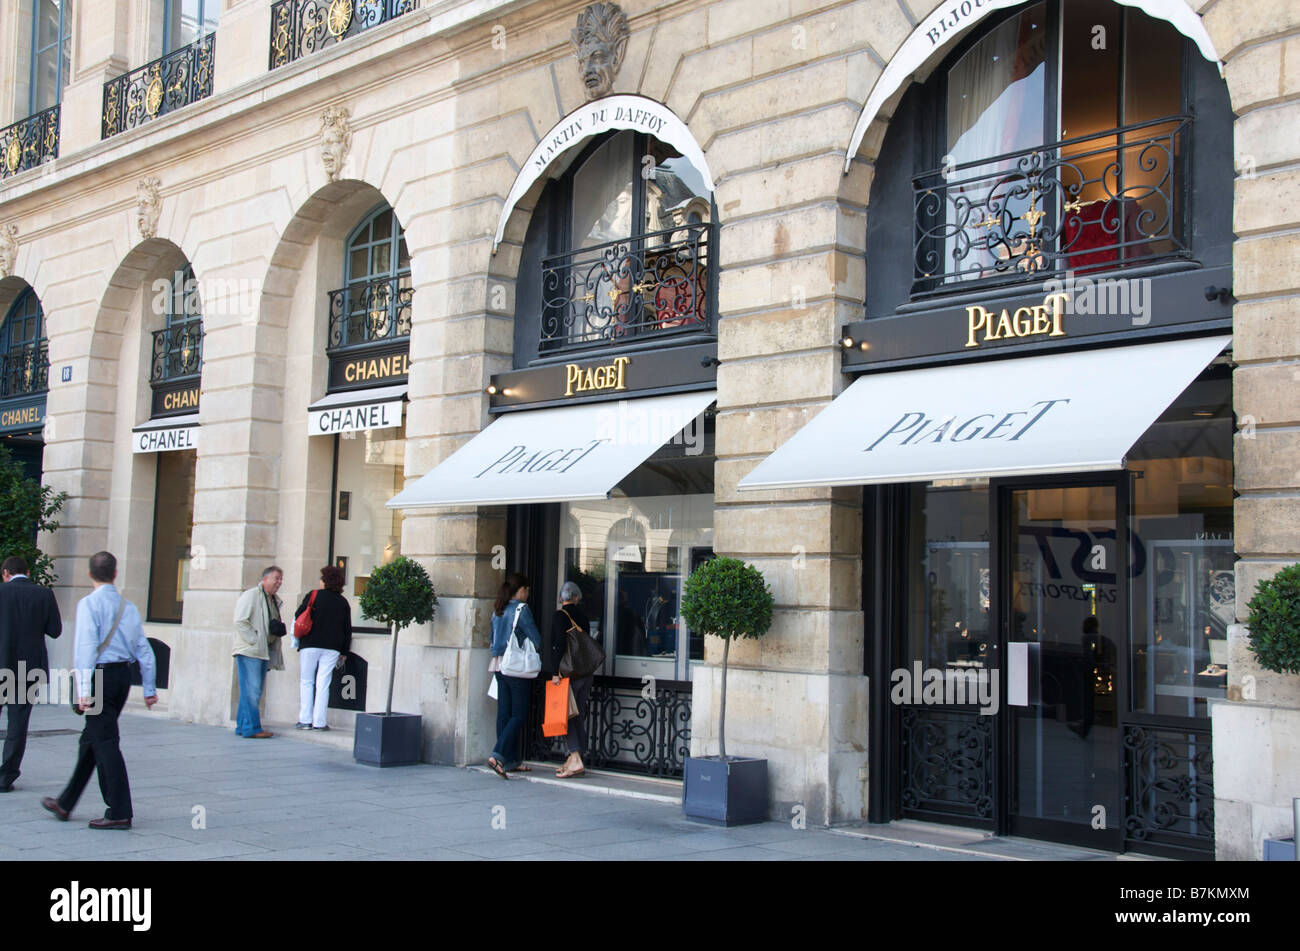 Luxury shop in place vendome paris plaget and chanel for Chanel locations in paris